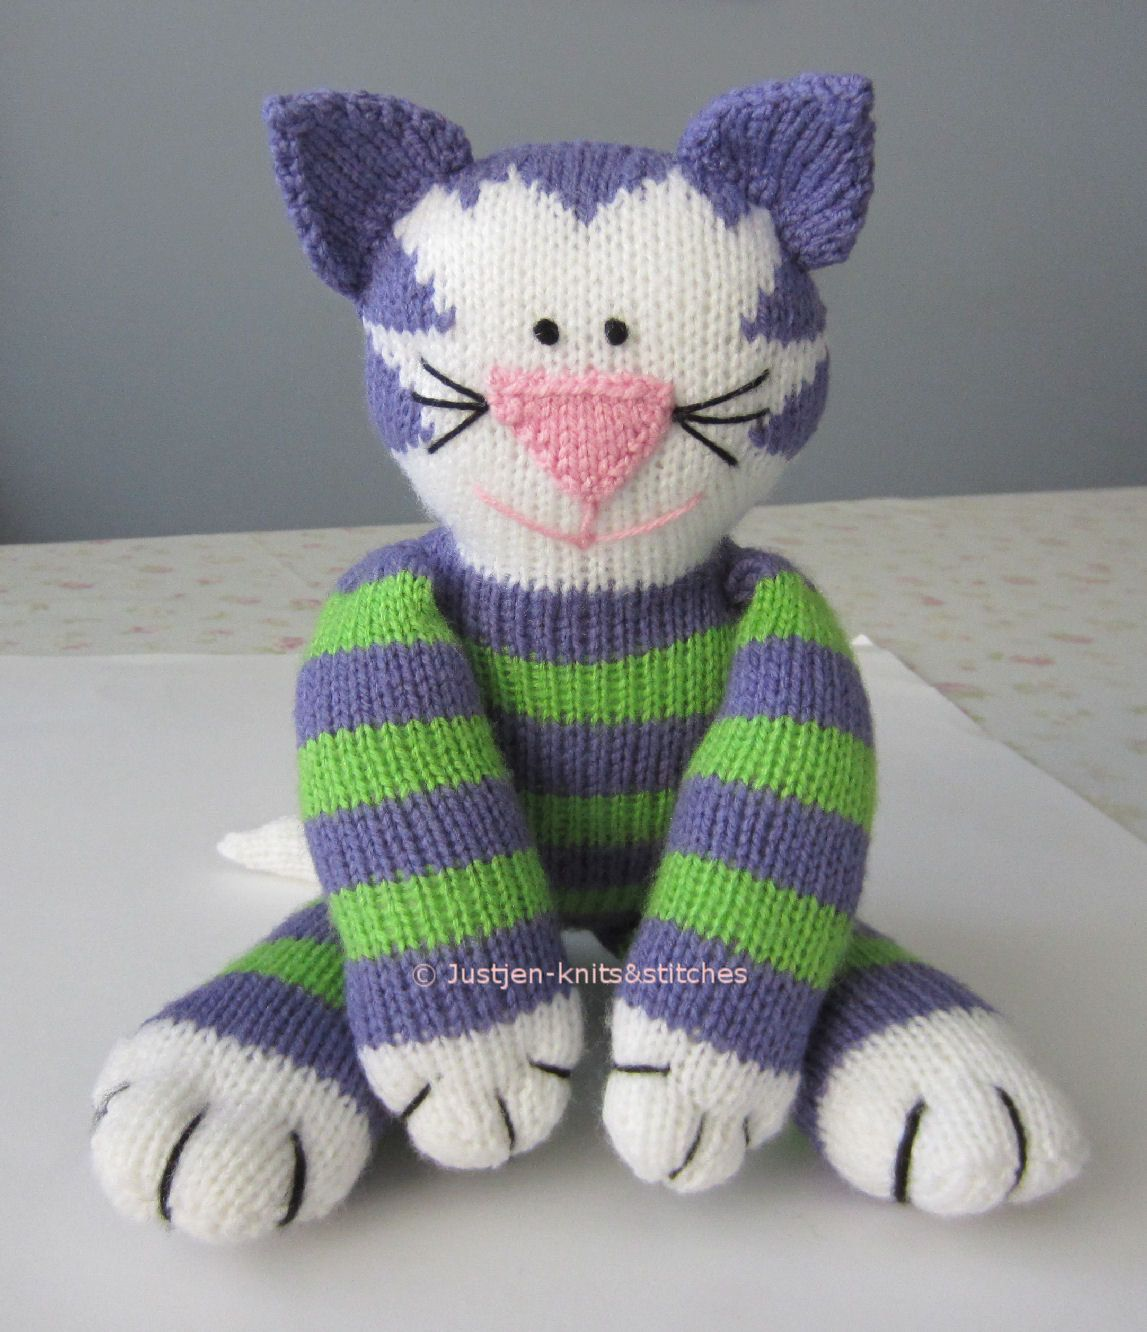 Justjen knitsstitches share kitty knitted cat pattern justjen knitsstitches share kitty knitted cat pattern bankloansurffo Images